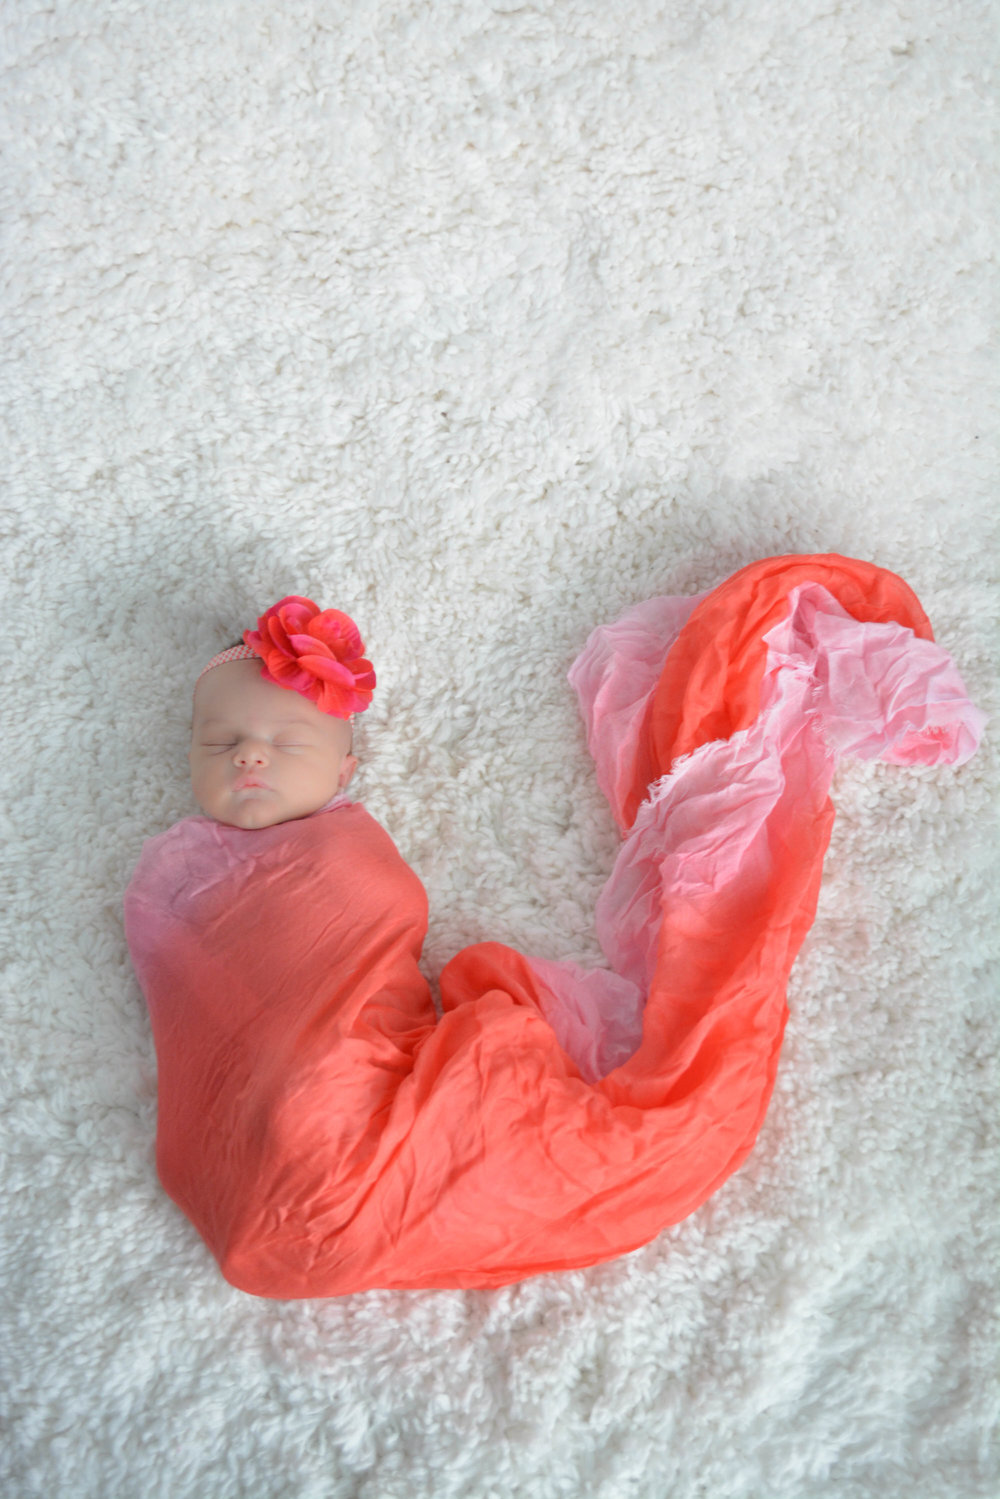 Sleeping newborn girl wrapped in red and pink with a big red and pink flower in her hair